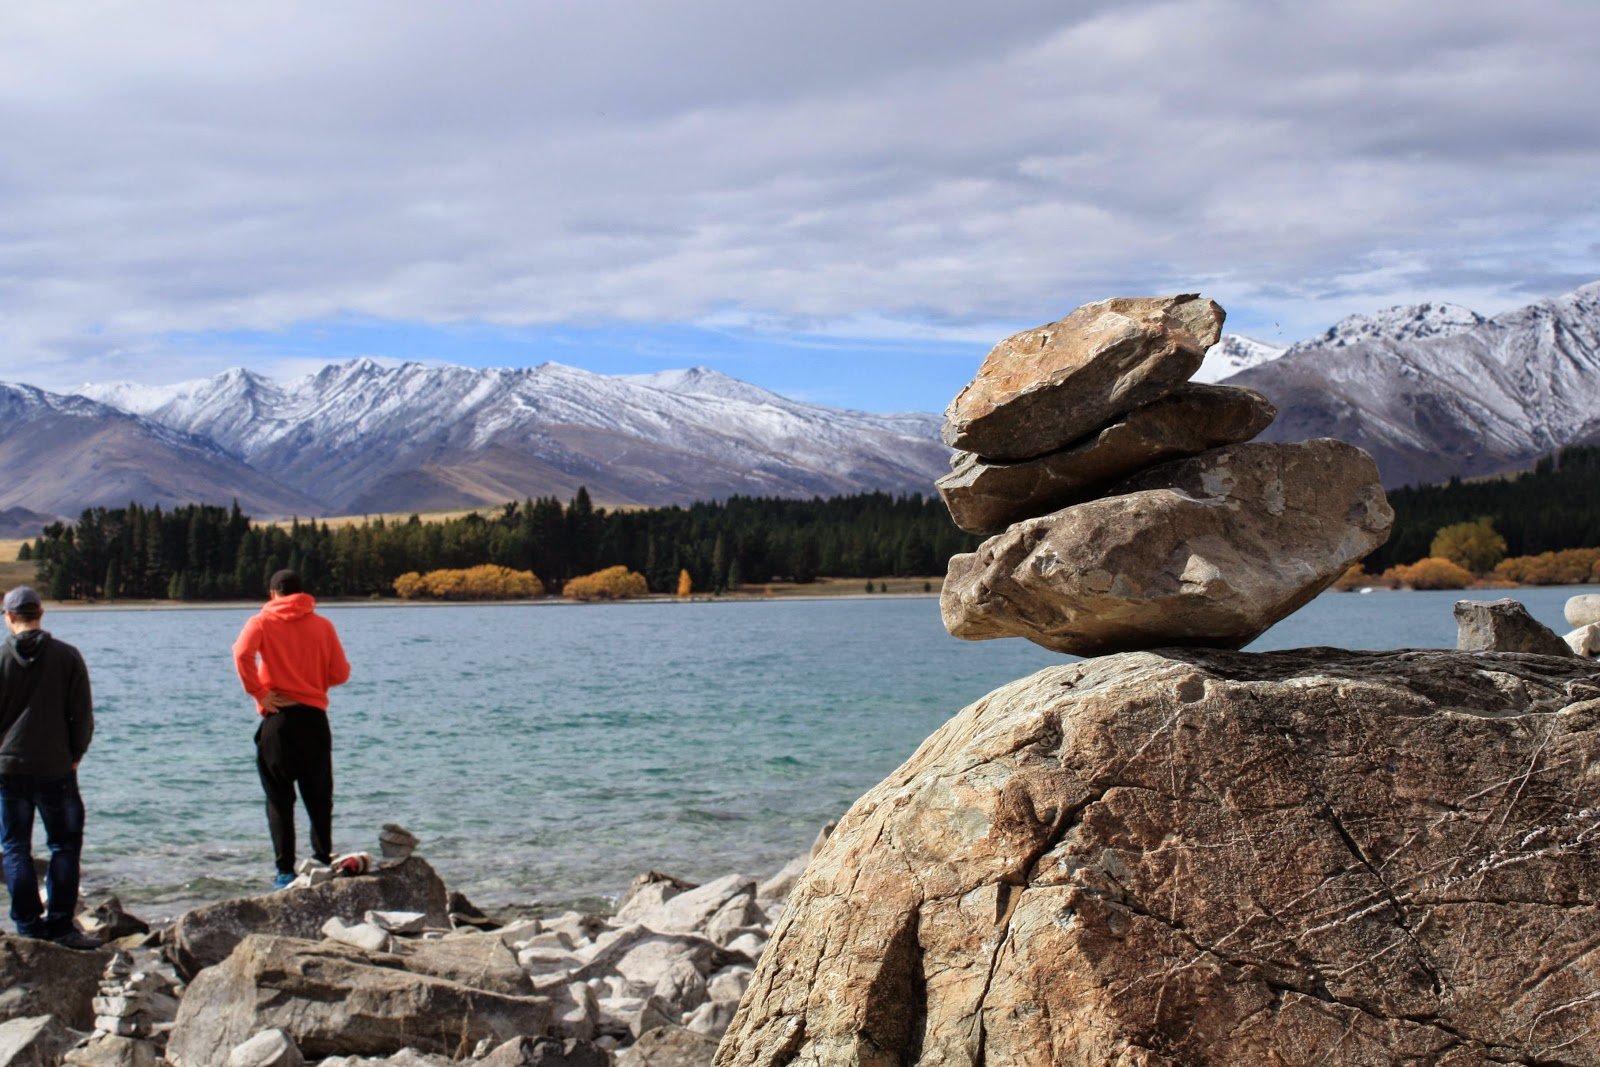 A pile of stacked stones by Lake Tekapo, in the South Island of New Zealand.